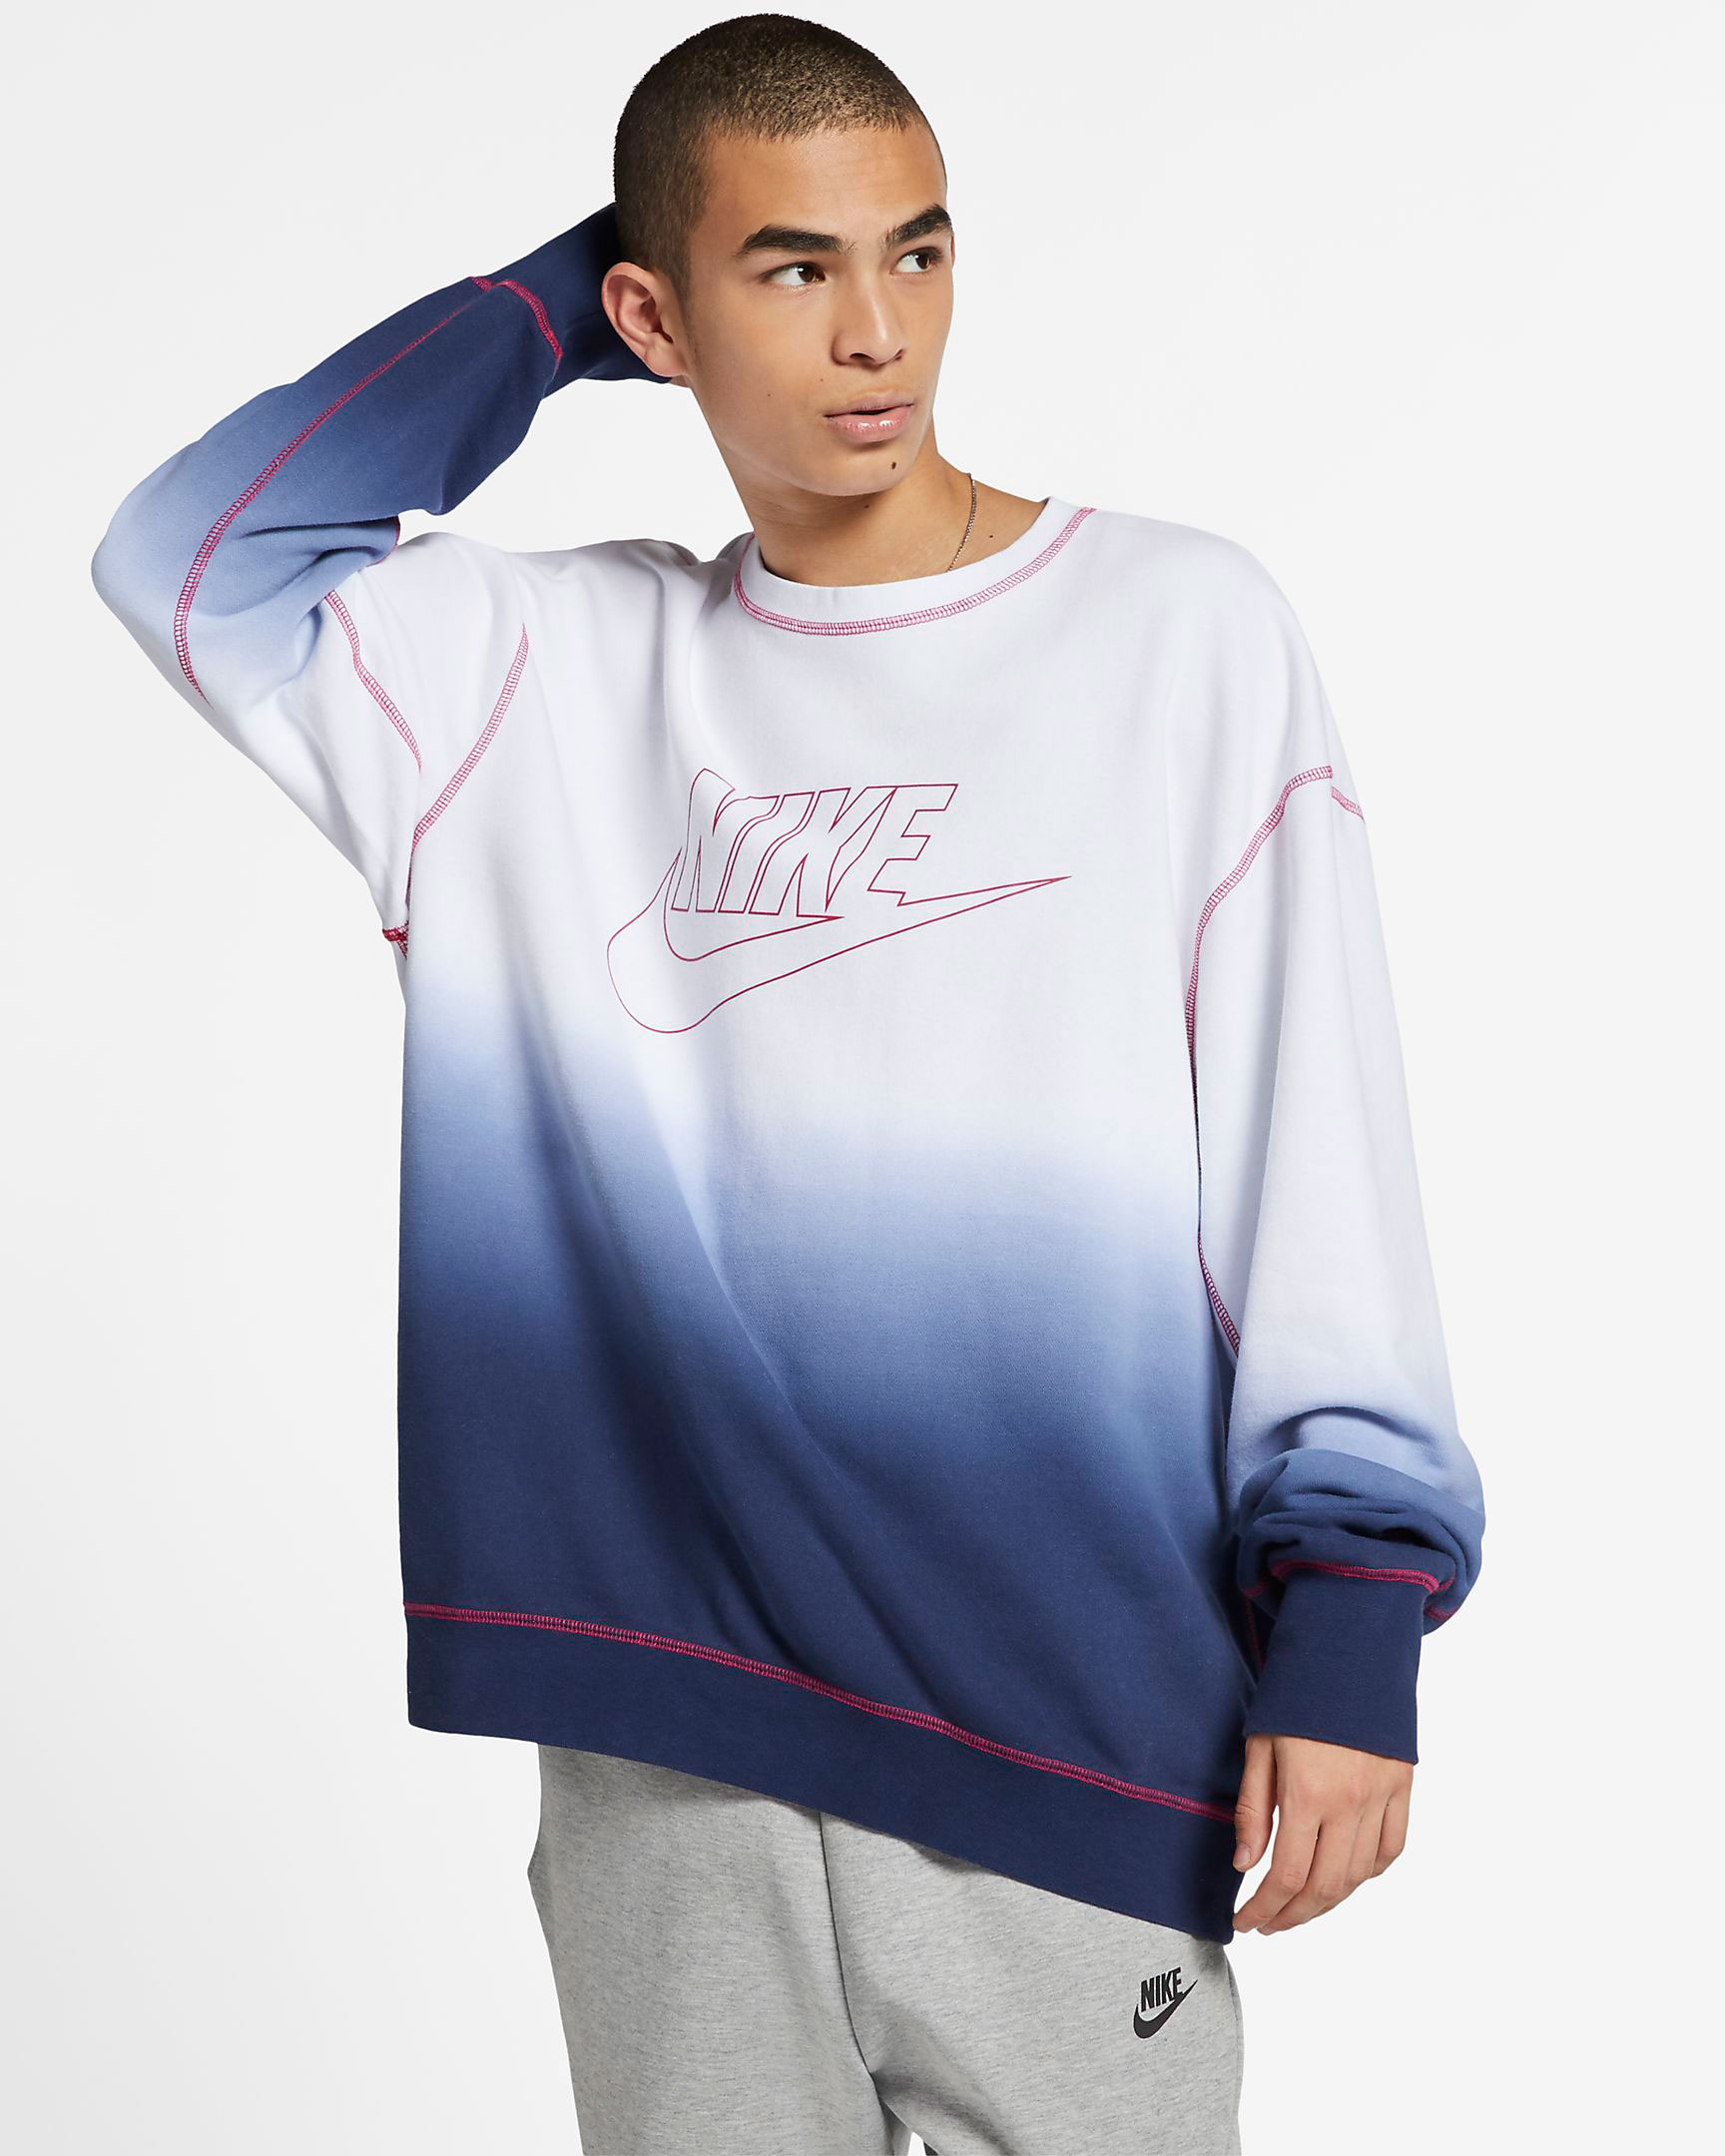 nike-throwback-futture-sweatshirt-match-3